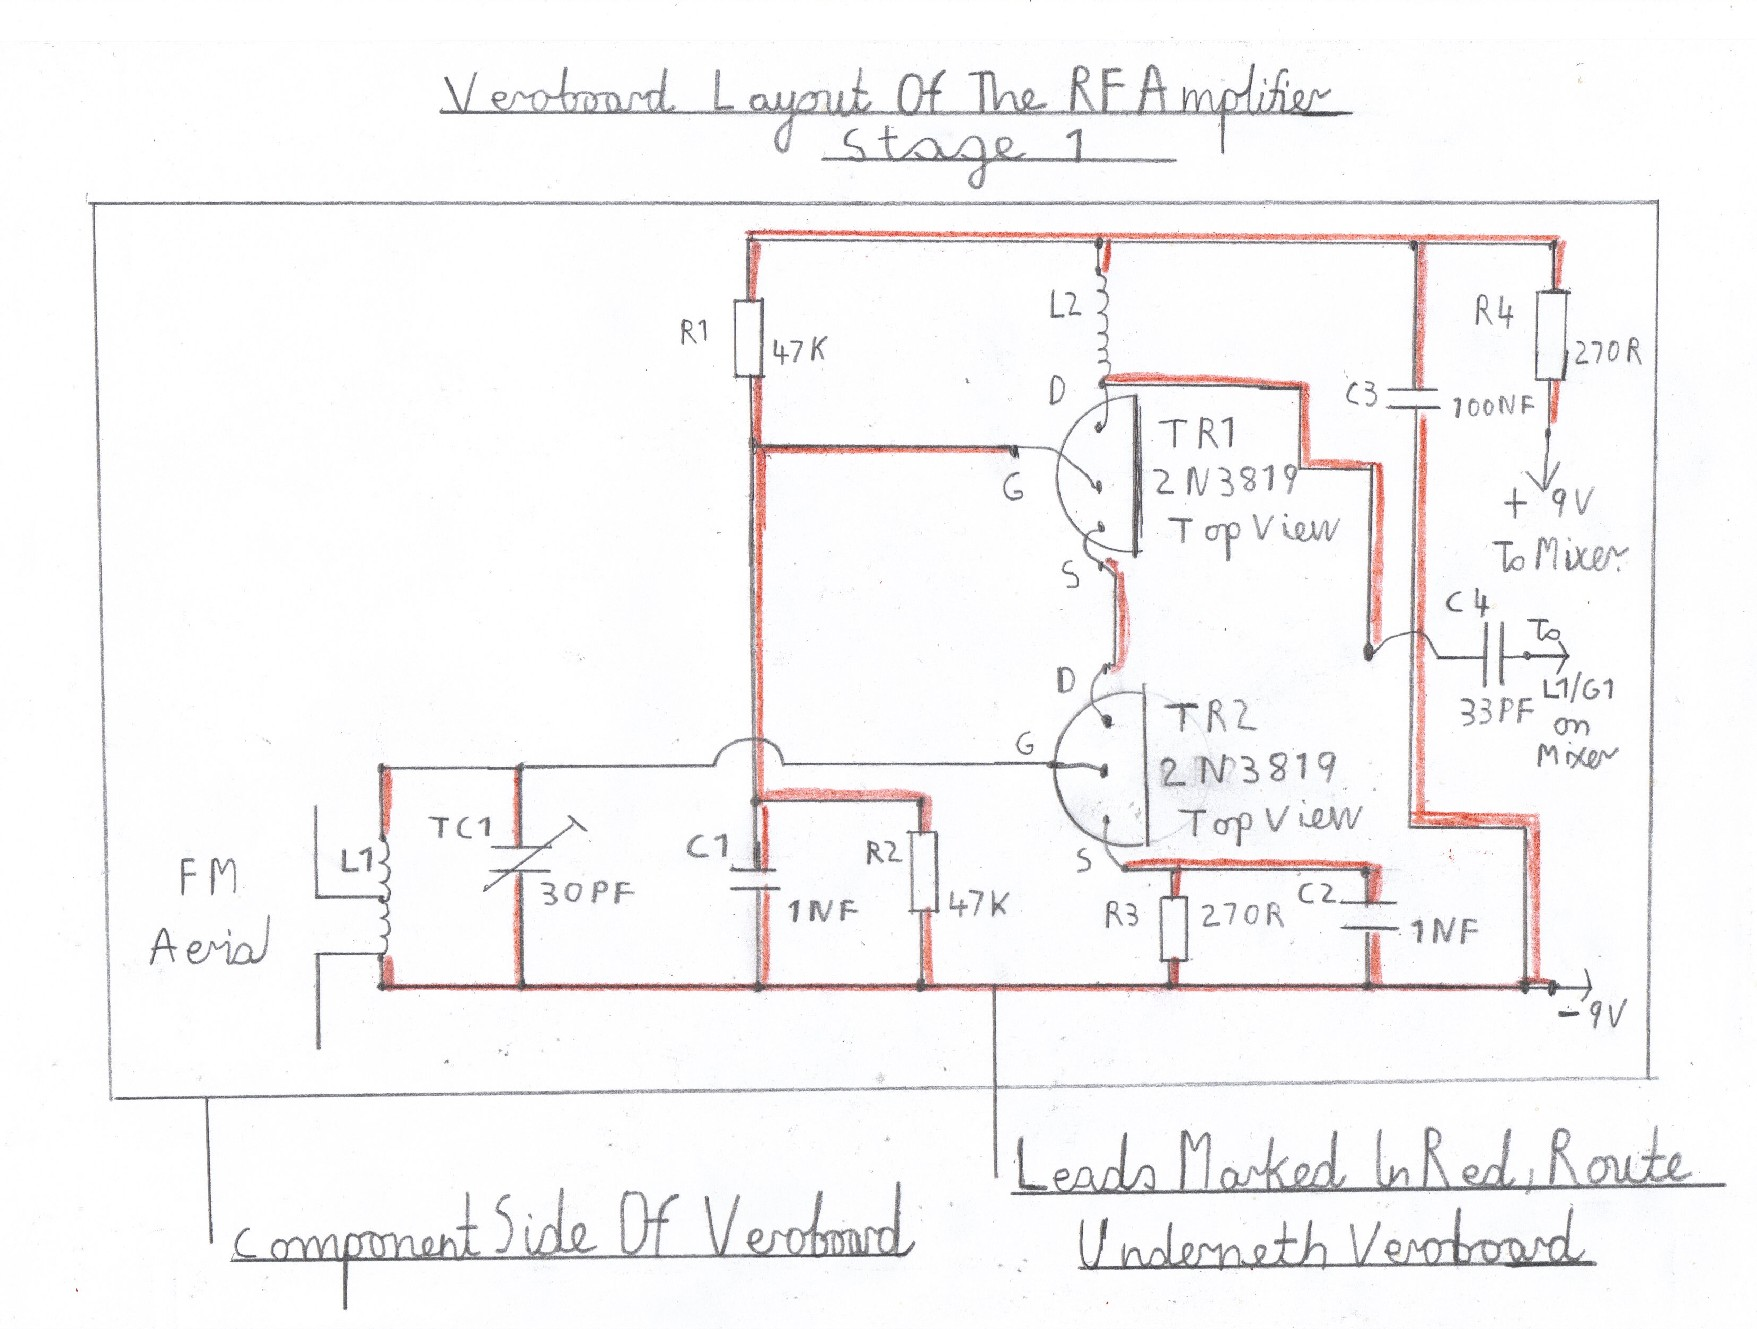 vhfrfampone transistor fm superhet receiver kitchen electrical wiring diagrams at mr168.co